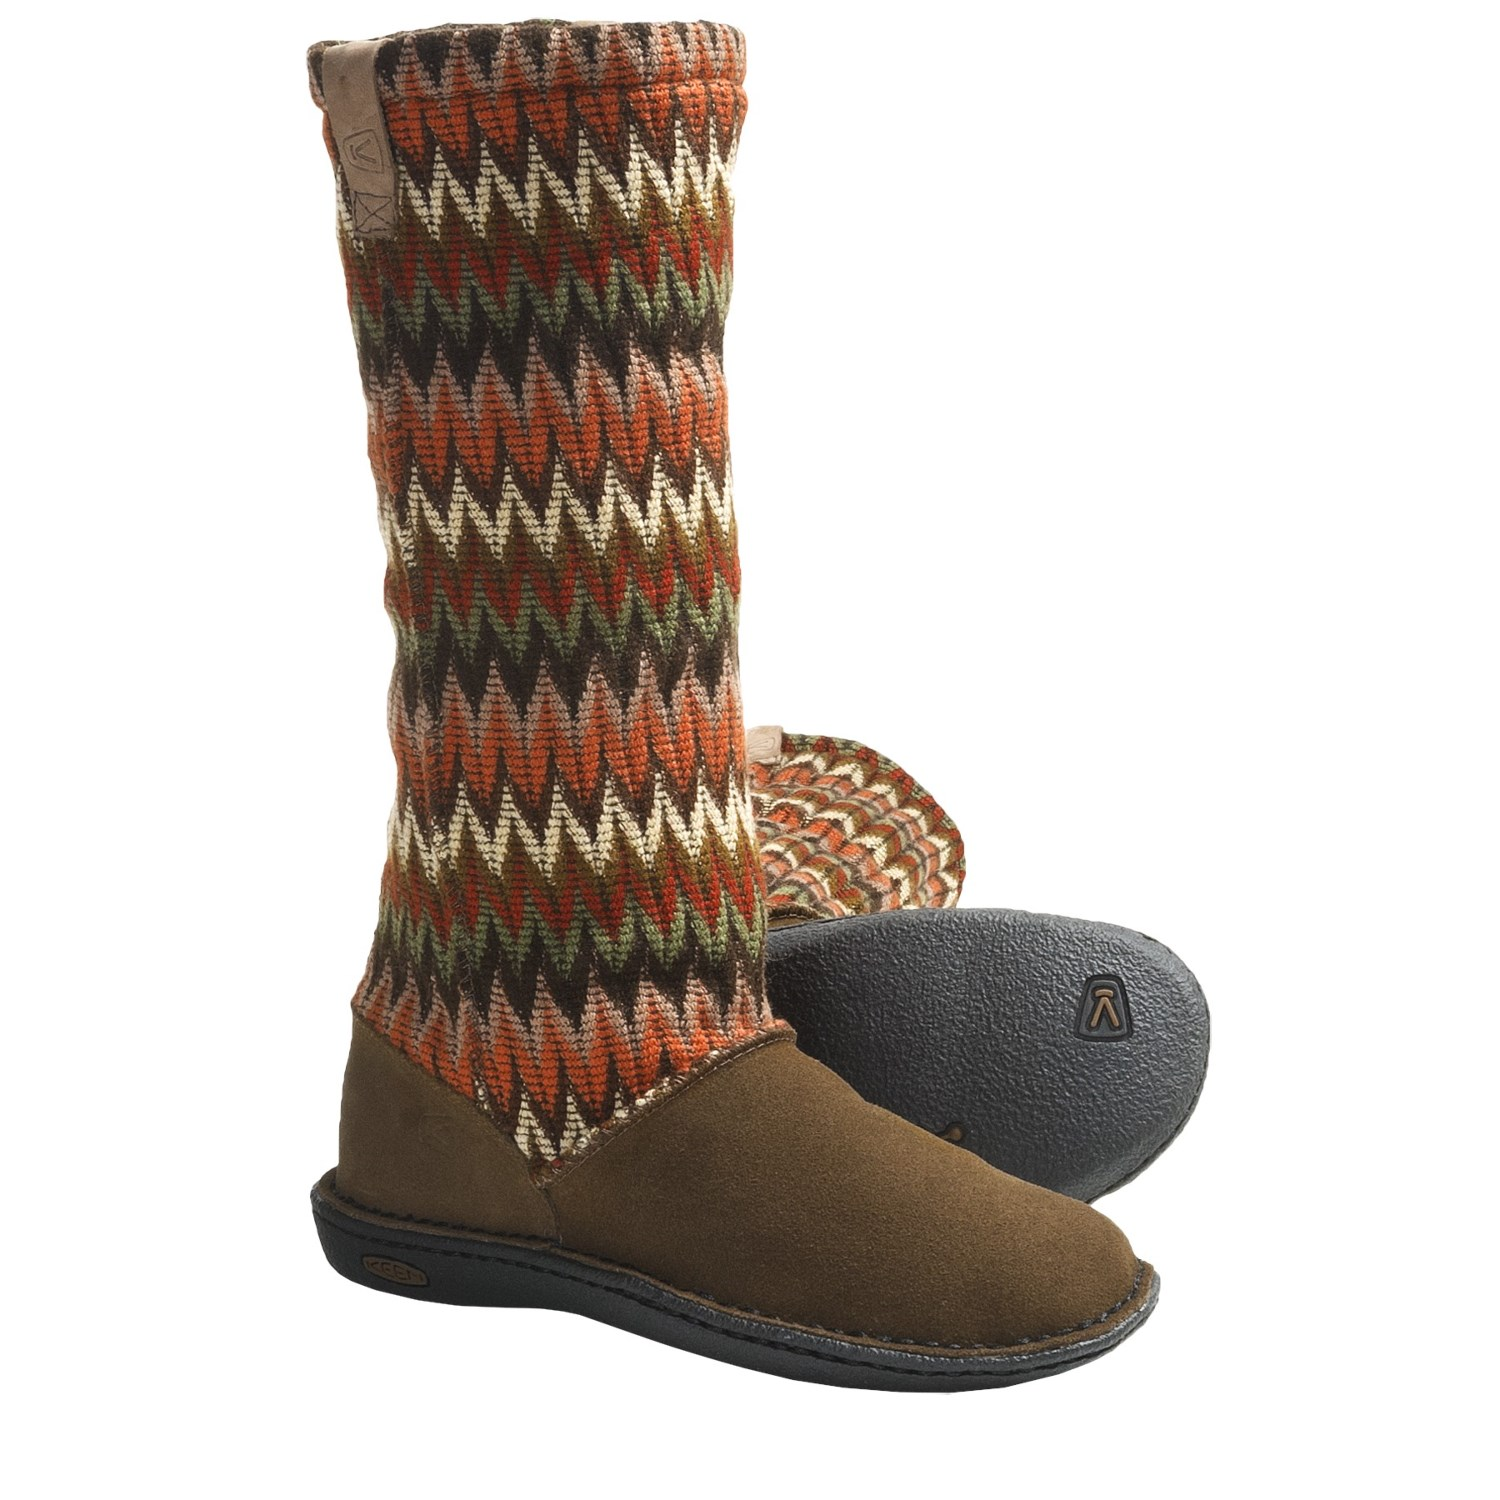 Original UGG Classic Cardy For Women  Crochet Knit Boots At UGGAustraliacom